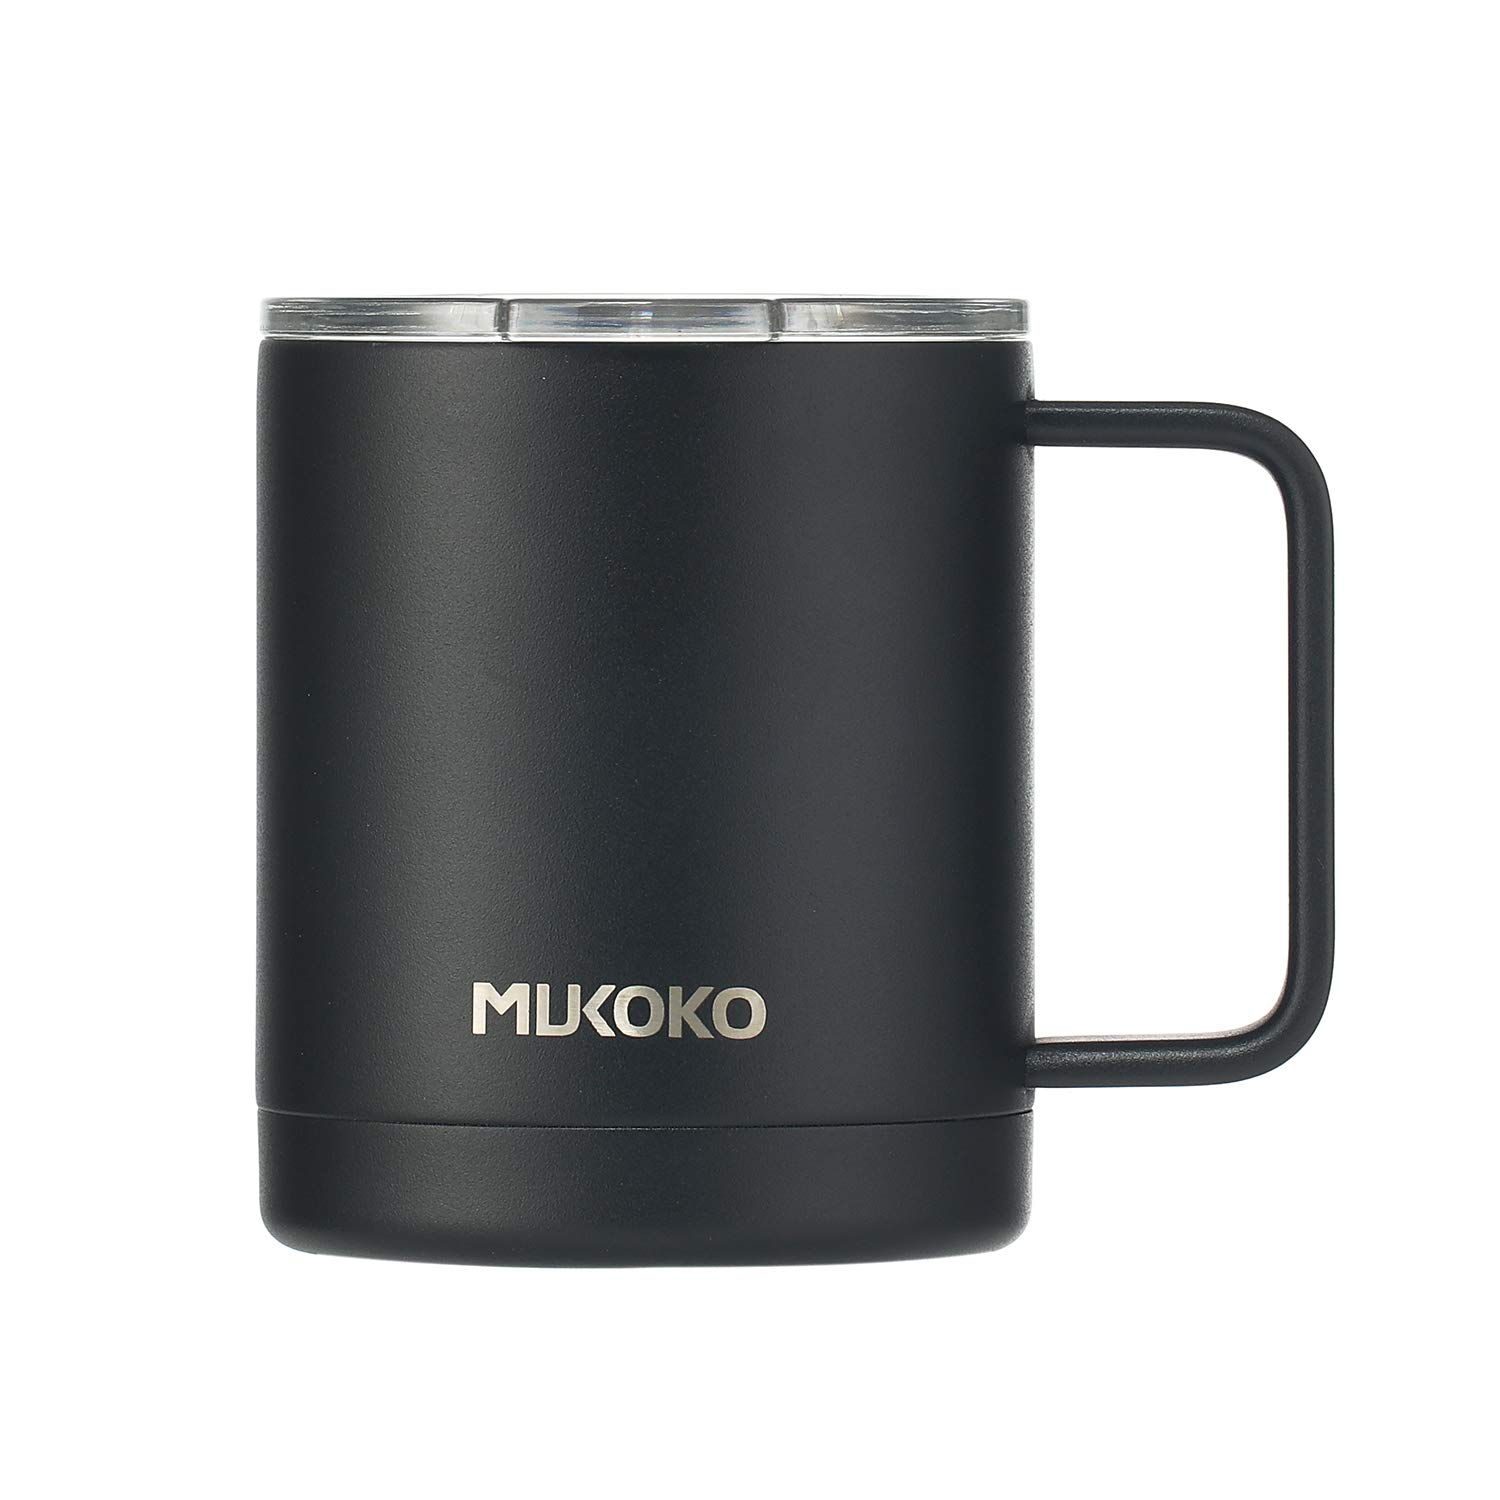 Insulated Coffee Mug 20oz Stainless Steel Vacuum Insulated Mug With Lid and Handle(18oz After Lid is Closed) Black